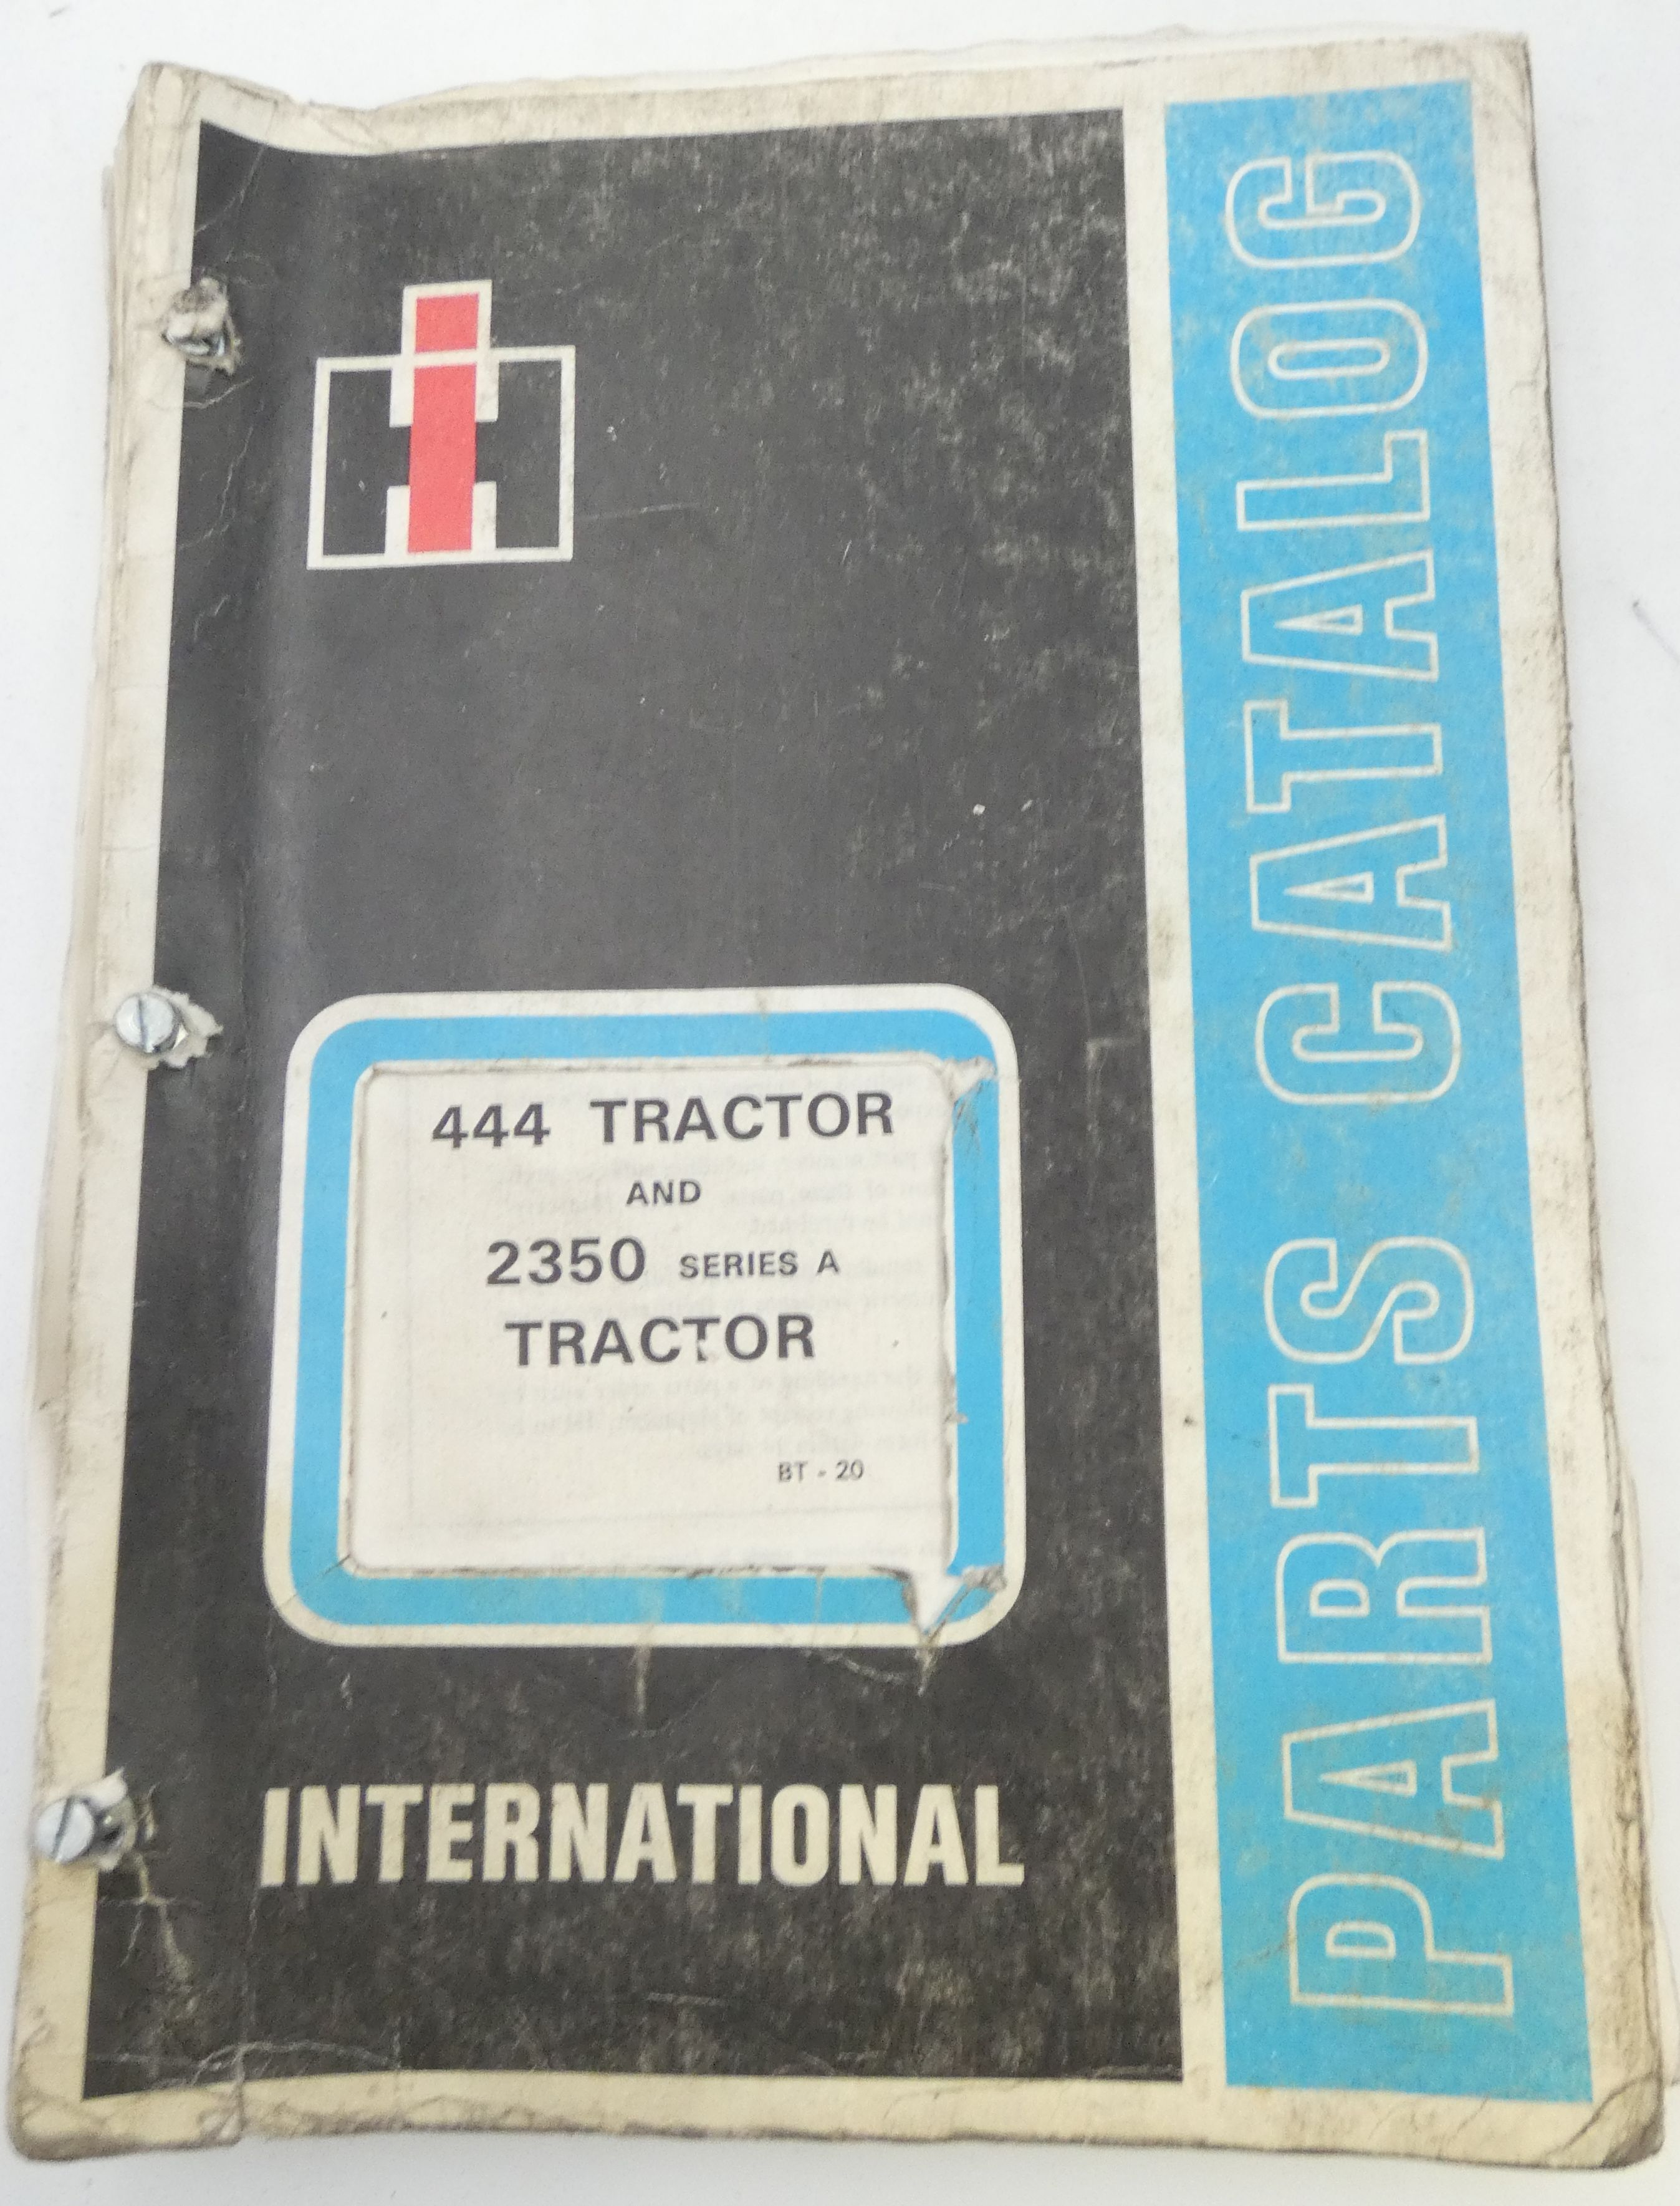 International 444 tractor and 2350 series A tractor parts catalog